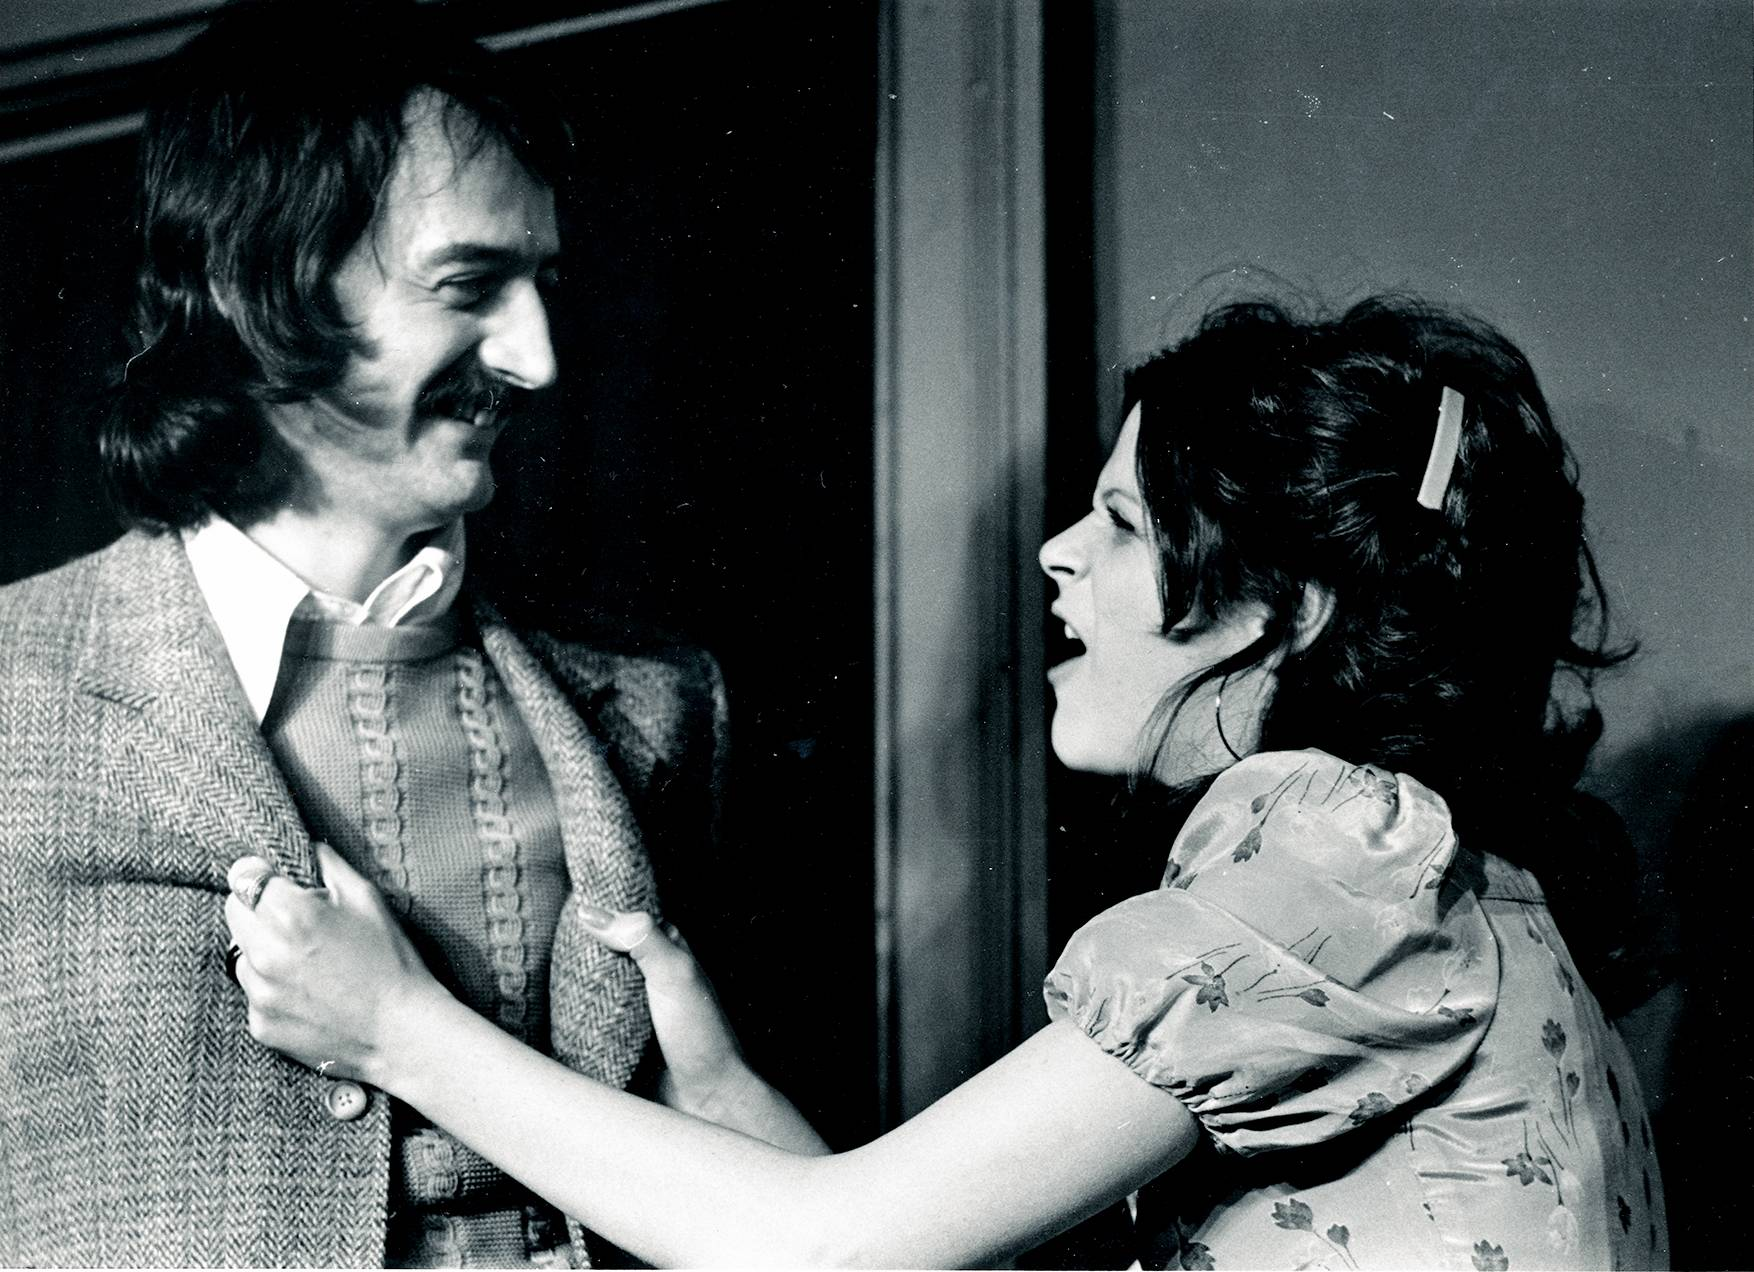 Production photo from the Mainstage of The Second City, 1974, showing Joe Flaherty and Gilda Radner doing improv.